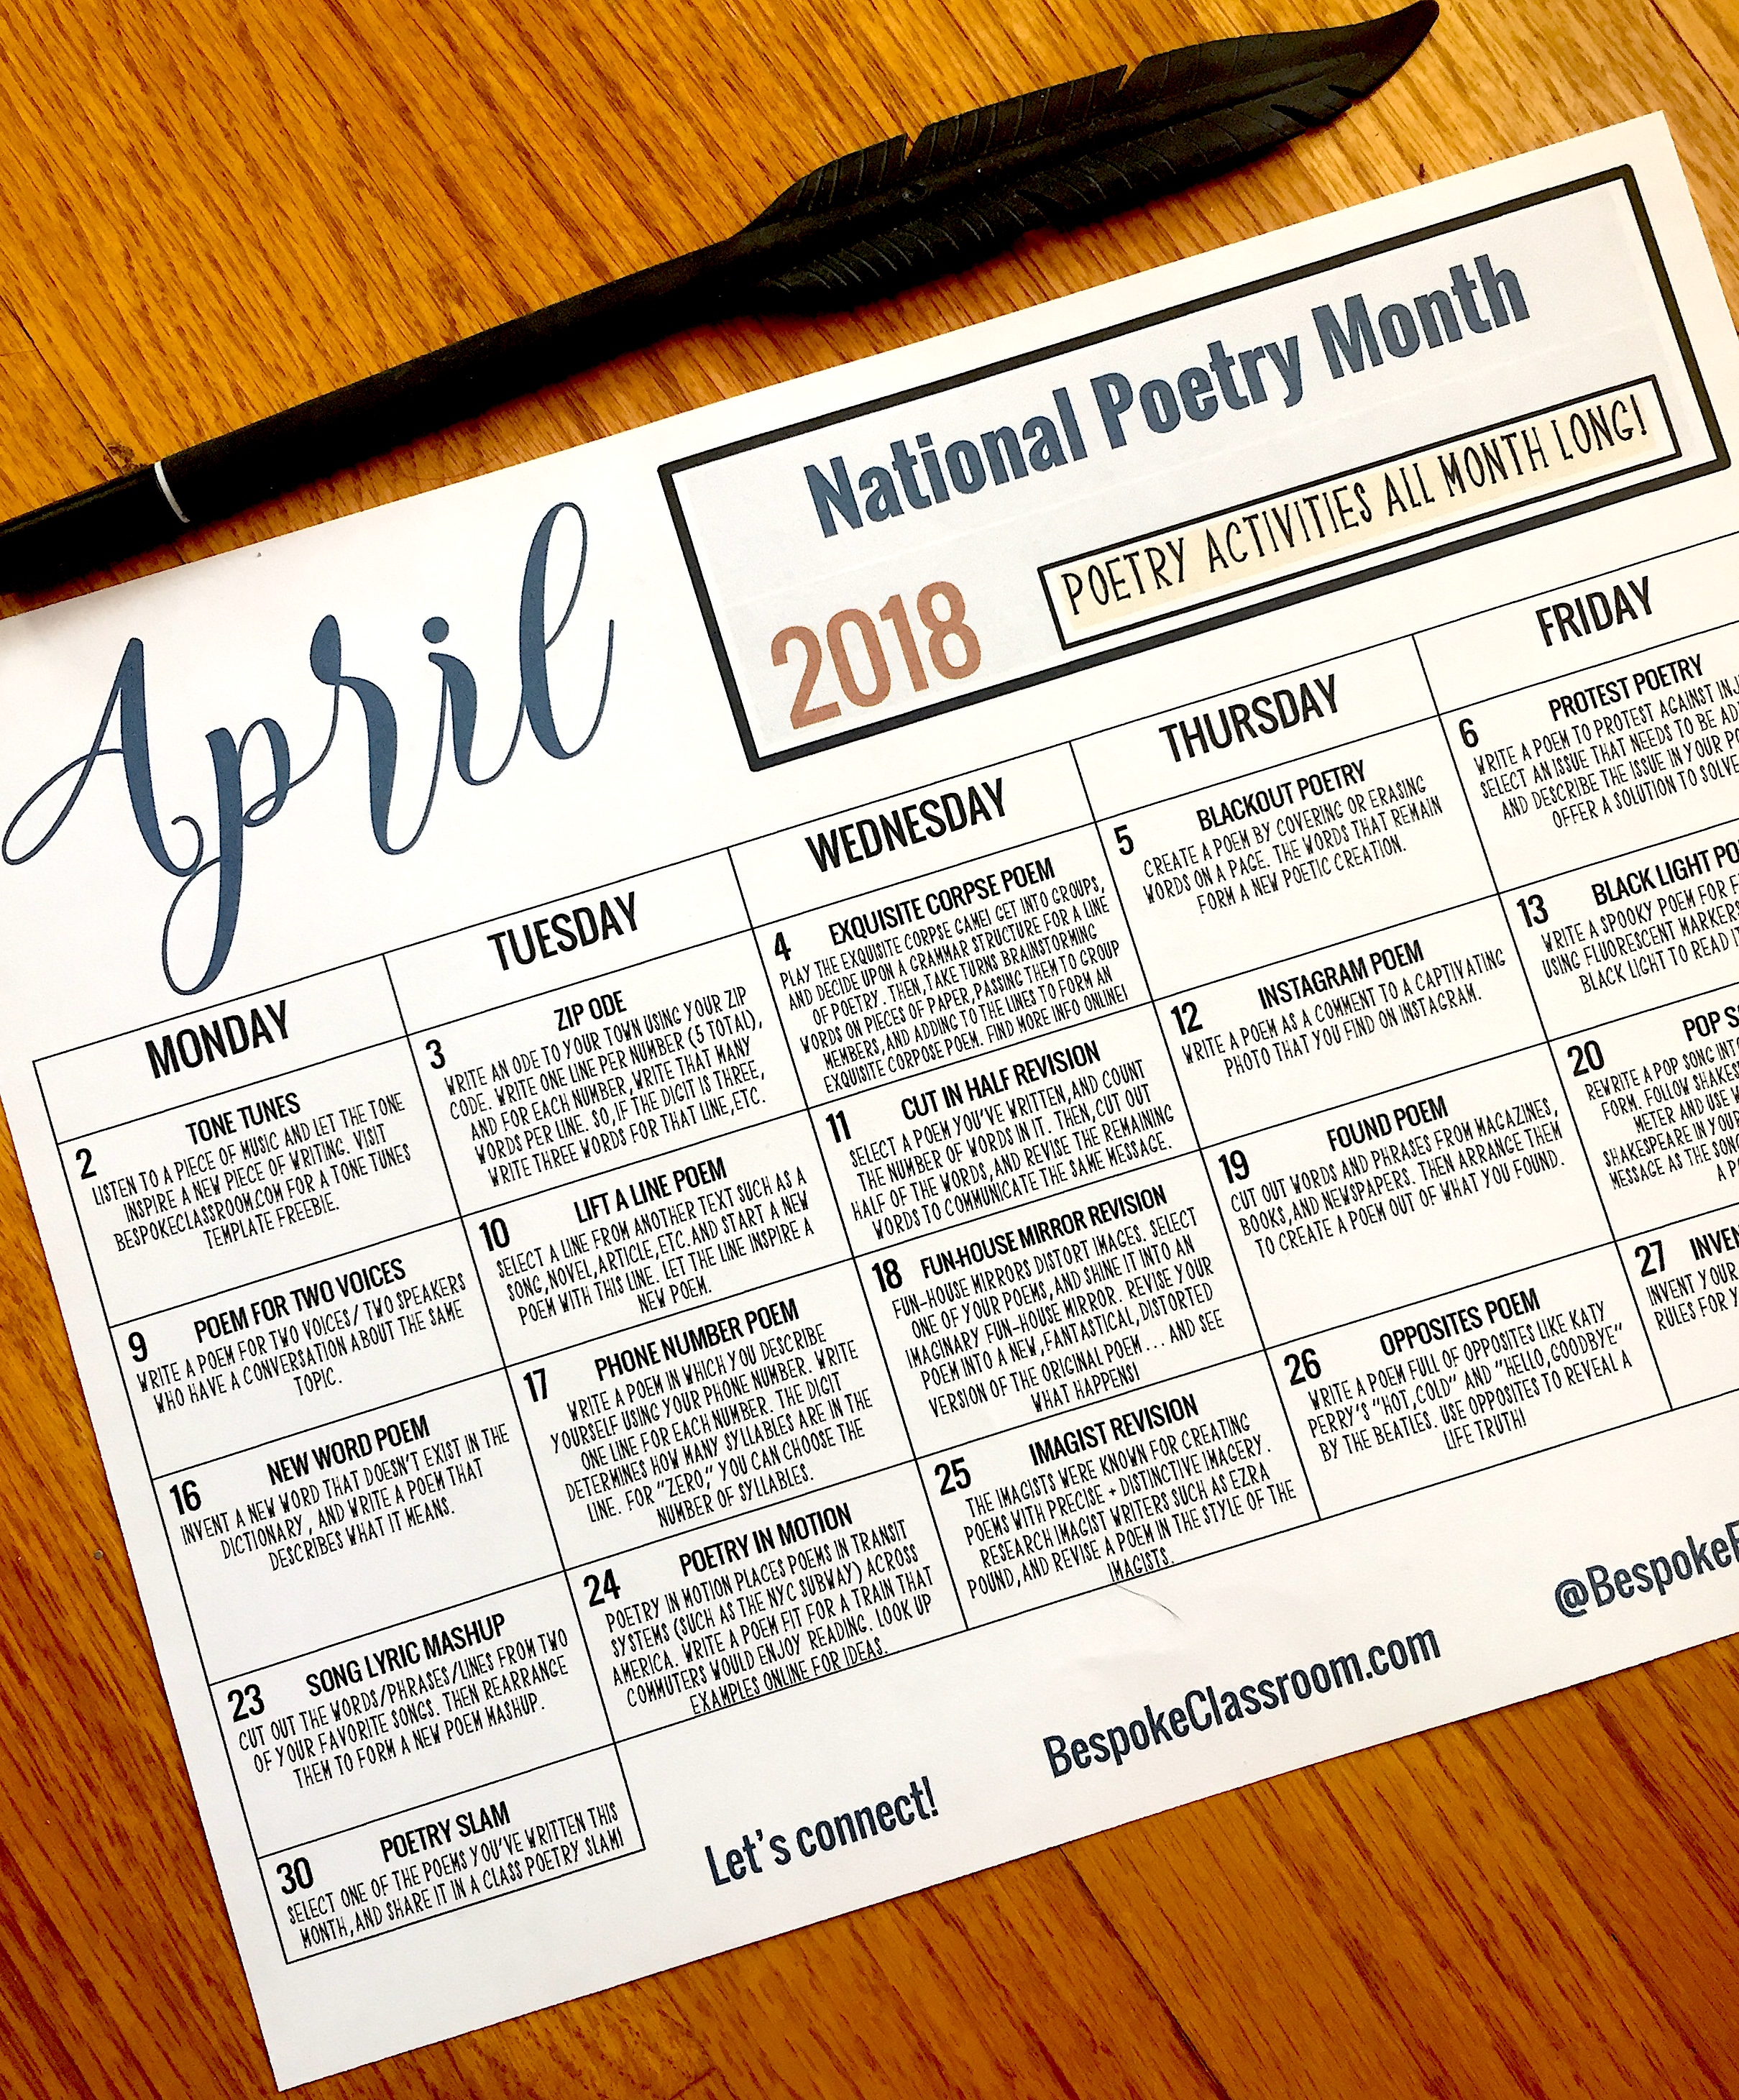 FREE CALENDAR for NATIONAL POETRY MONTH!